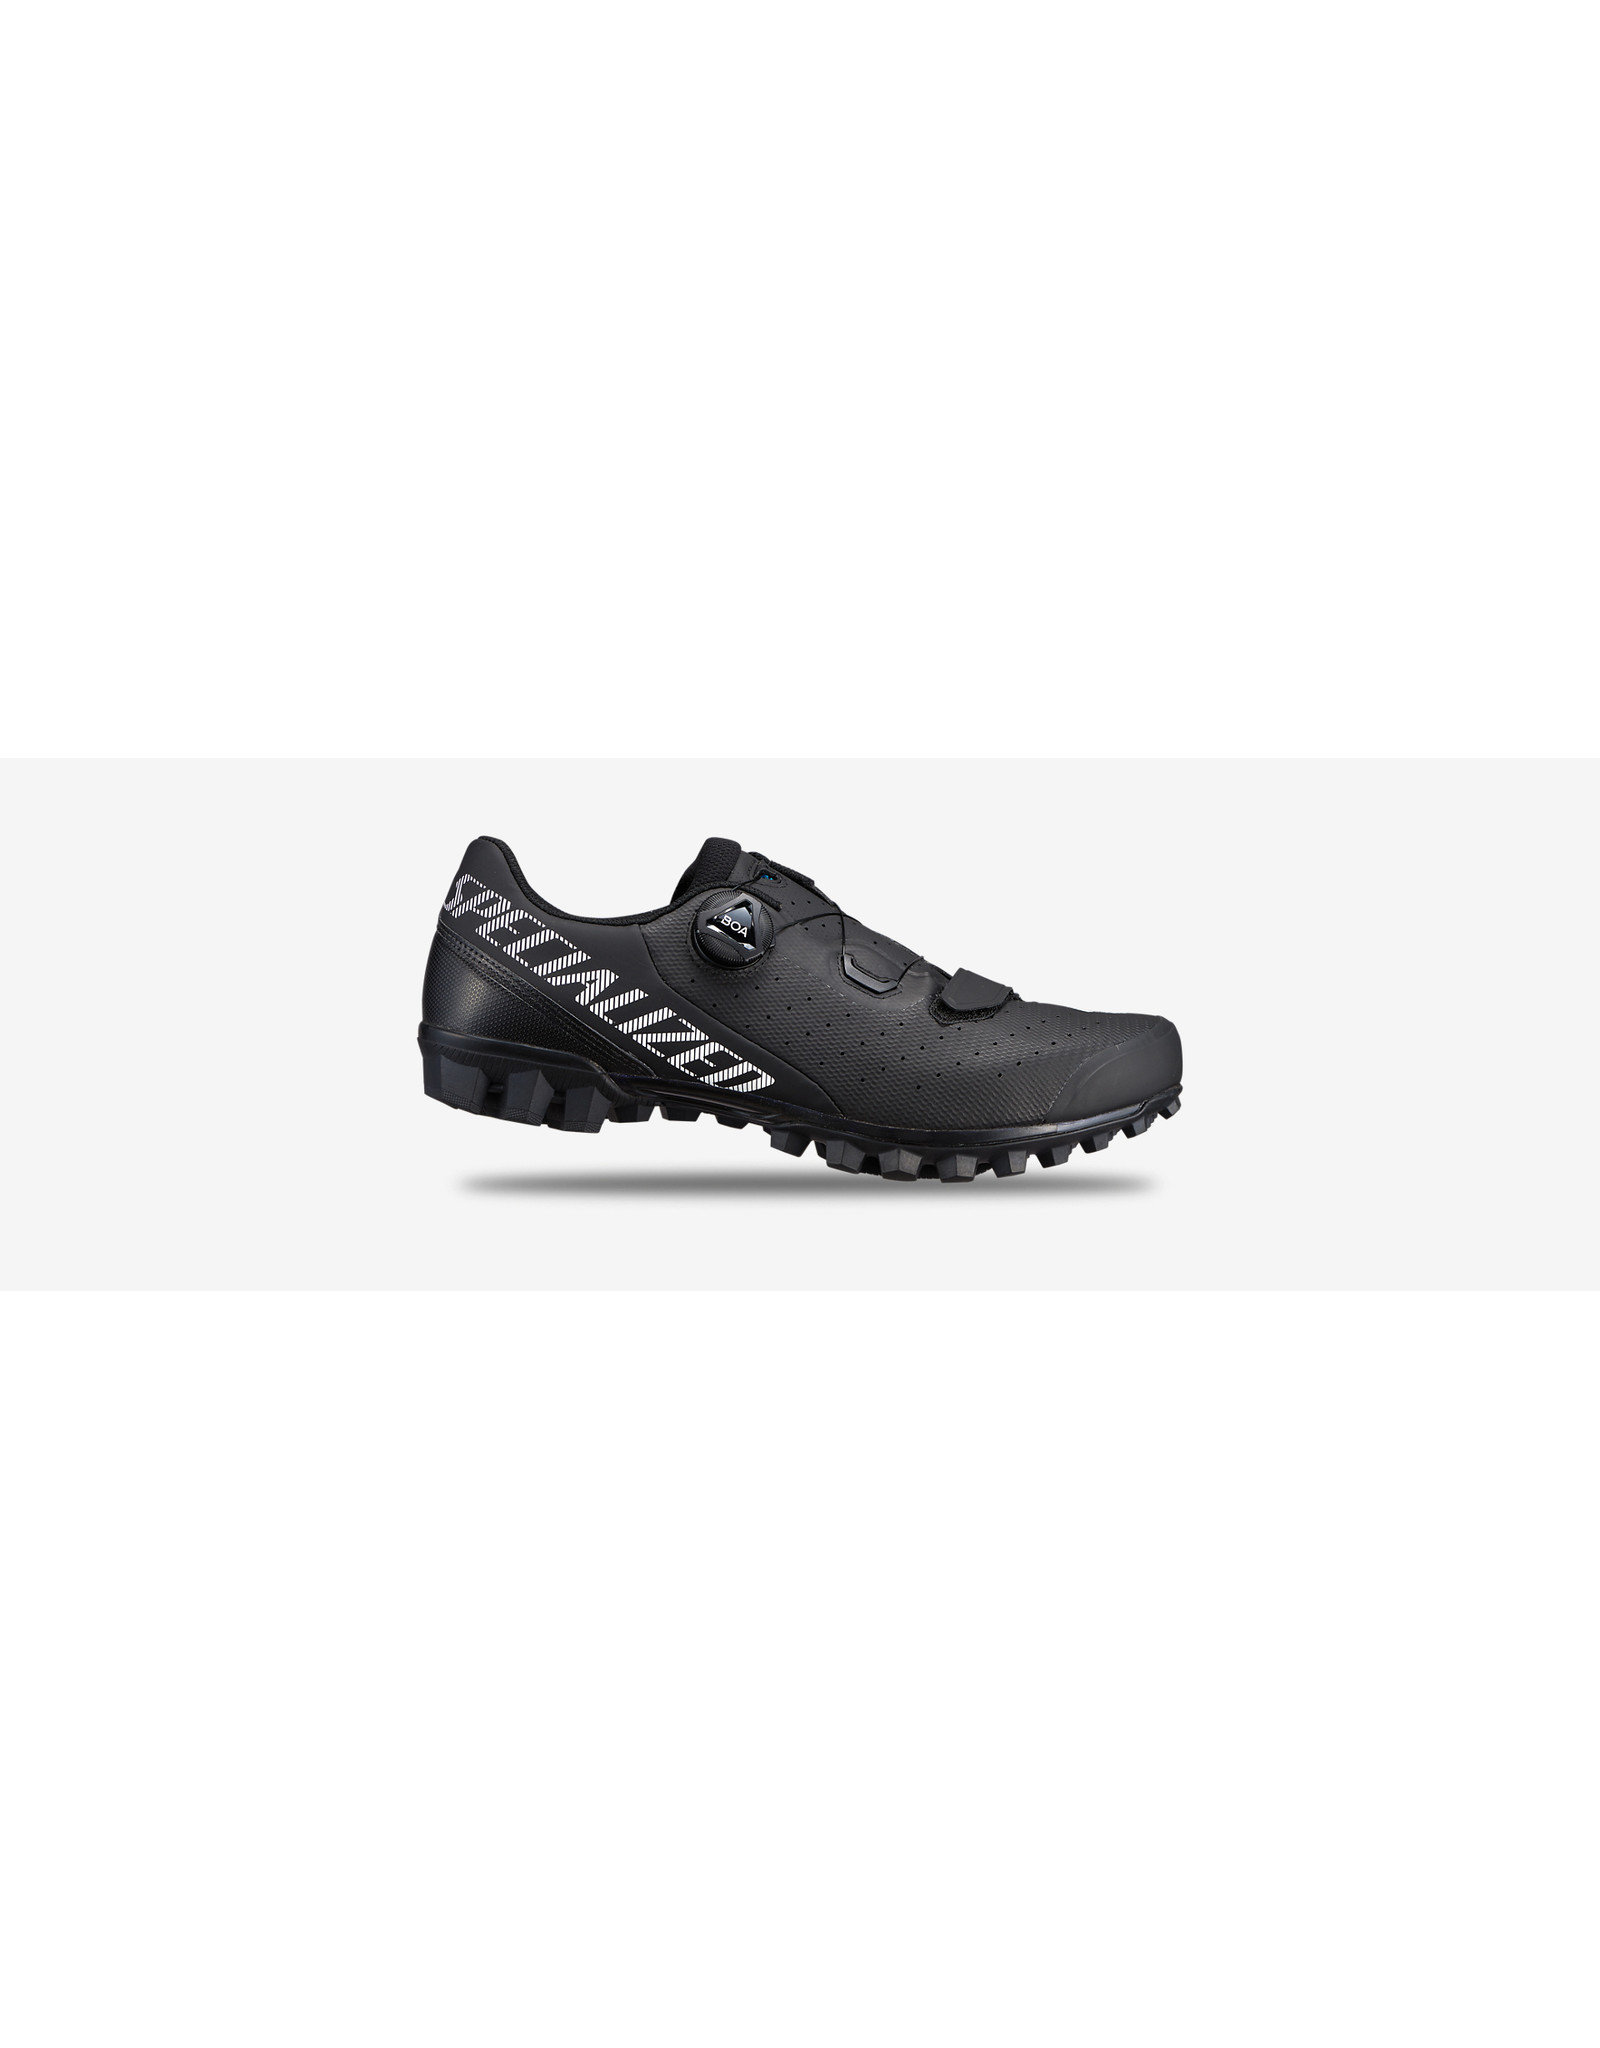 Specialized Recon 2.0 MTB Shoe-